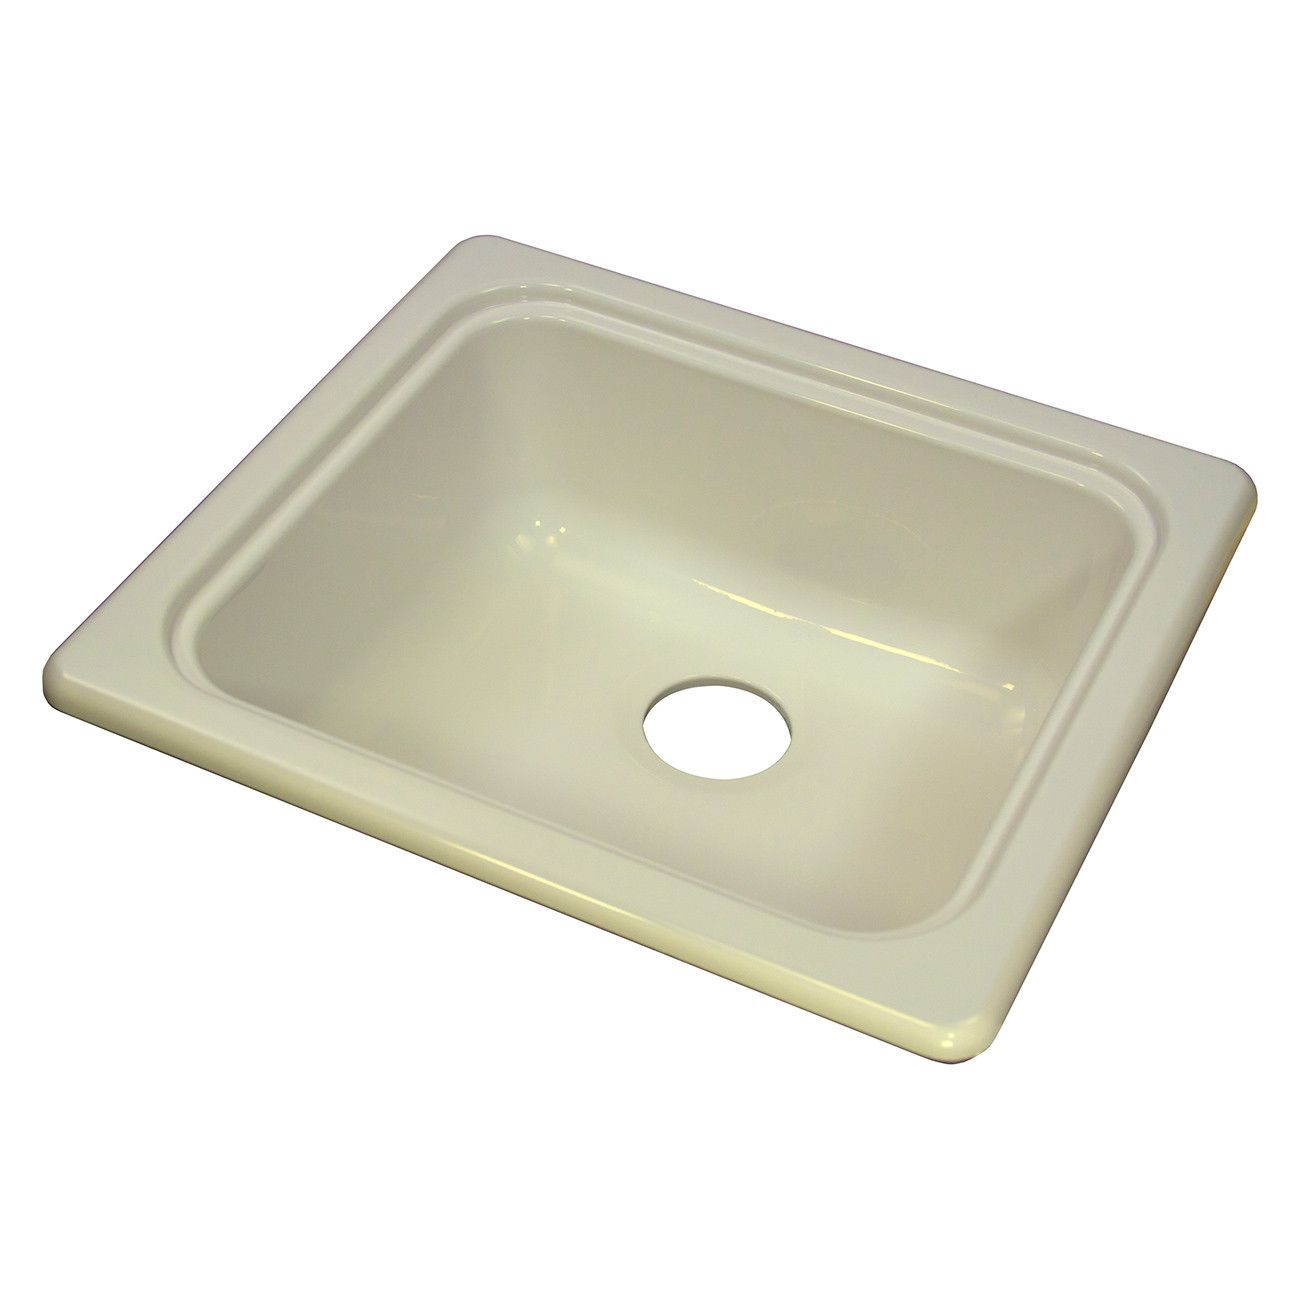 mobile home kitchen sink light fixtures for lyons dks09f 3 5 biscuit 18 inch by 20 recreational